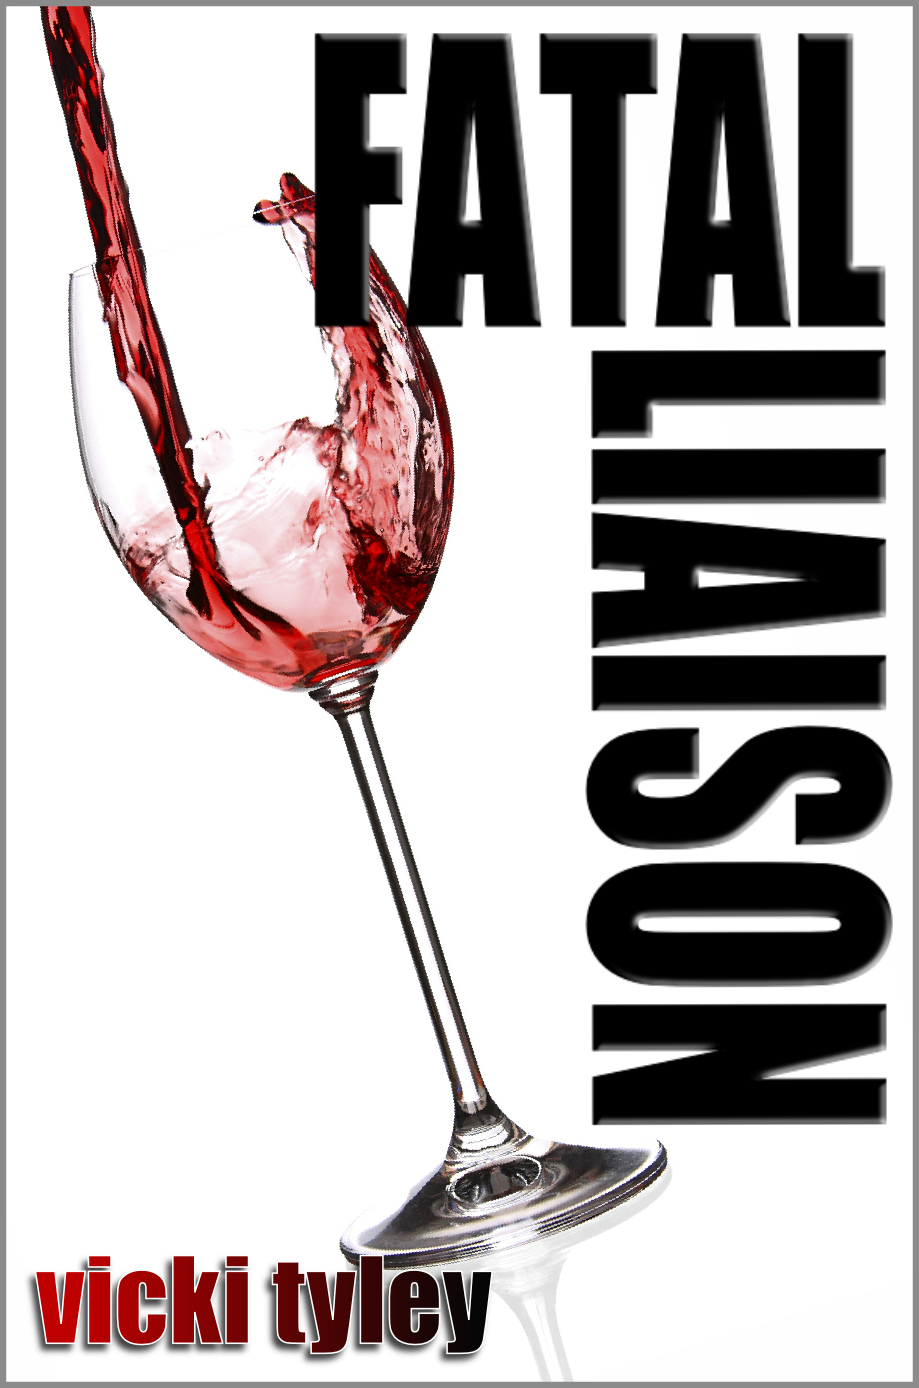 Fatal Liaison By: Vicki Tyley